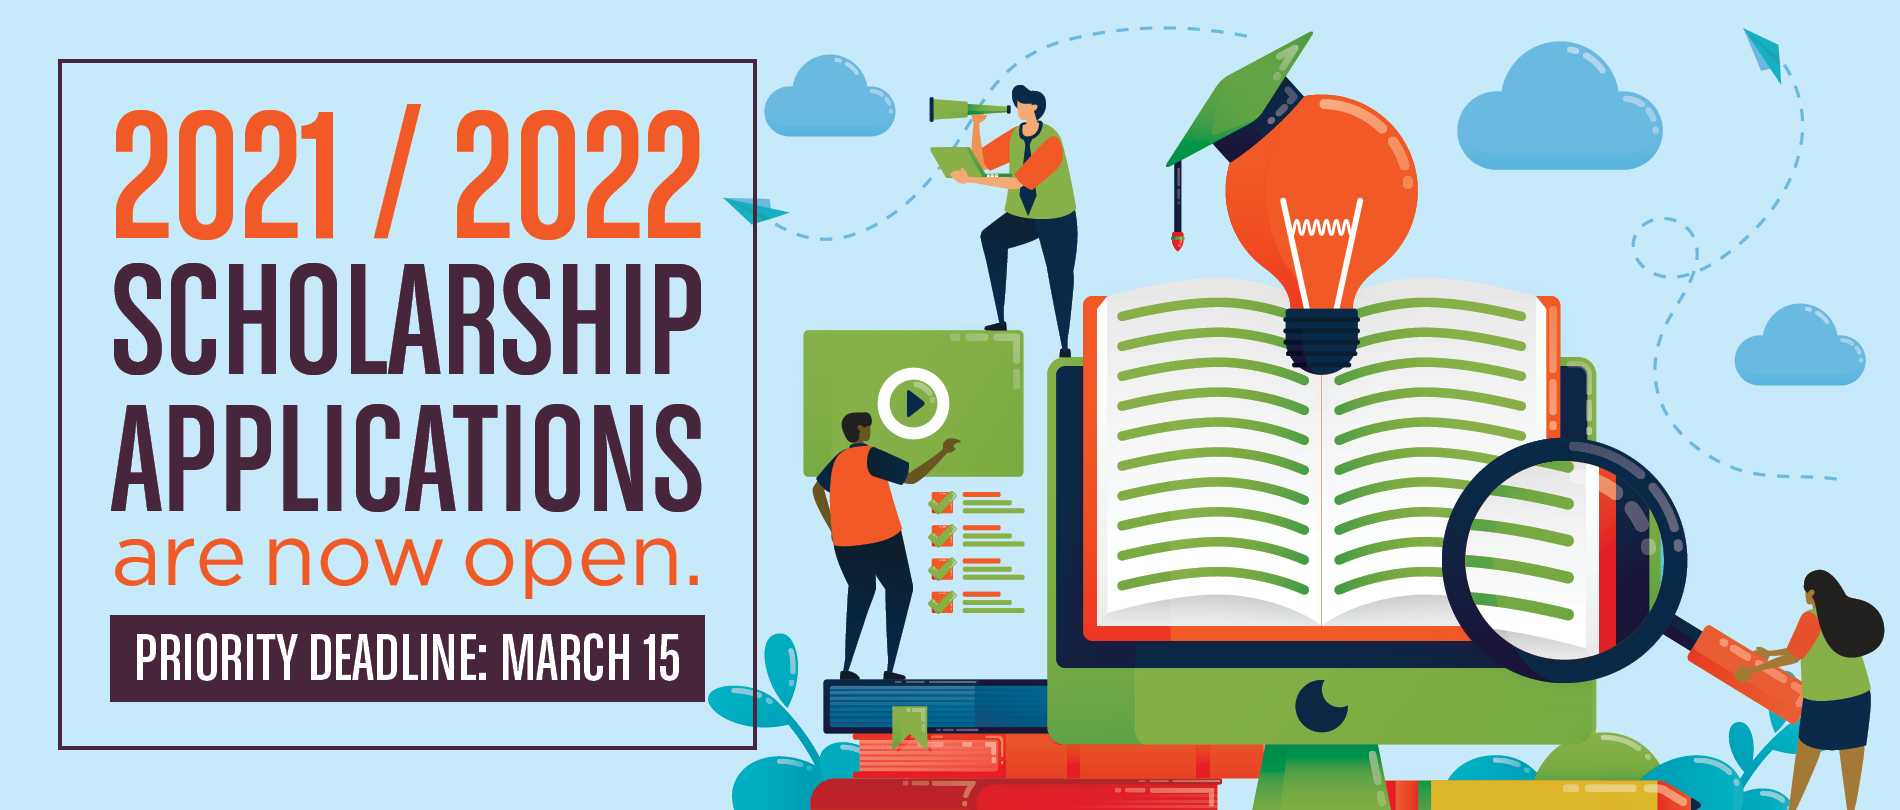 2021-2022 Scholarship Applications are now open